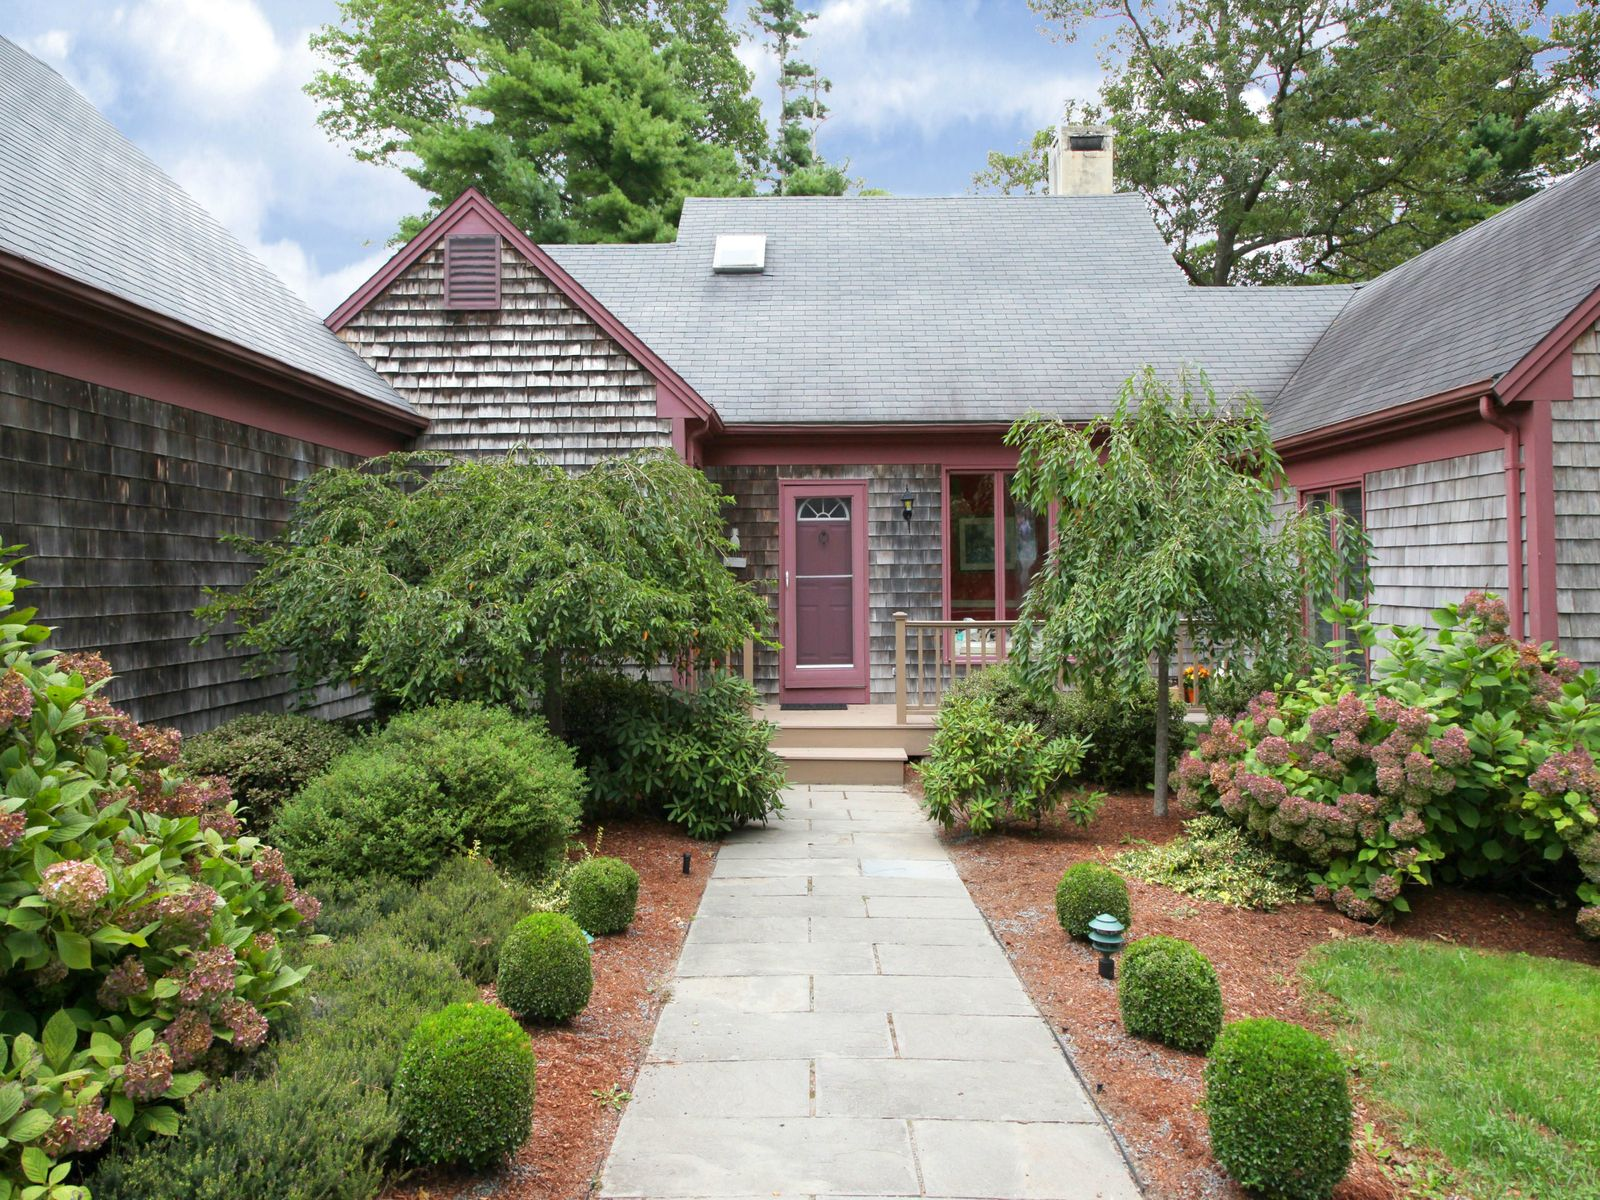 Mystic Lake Casual Elegance, Marstons Mills MA Single Family Home - Cape Cod Real Estate